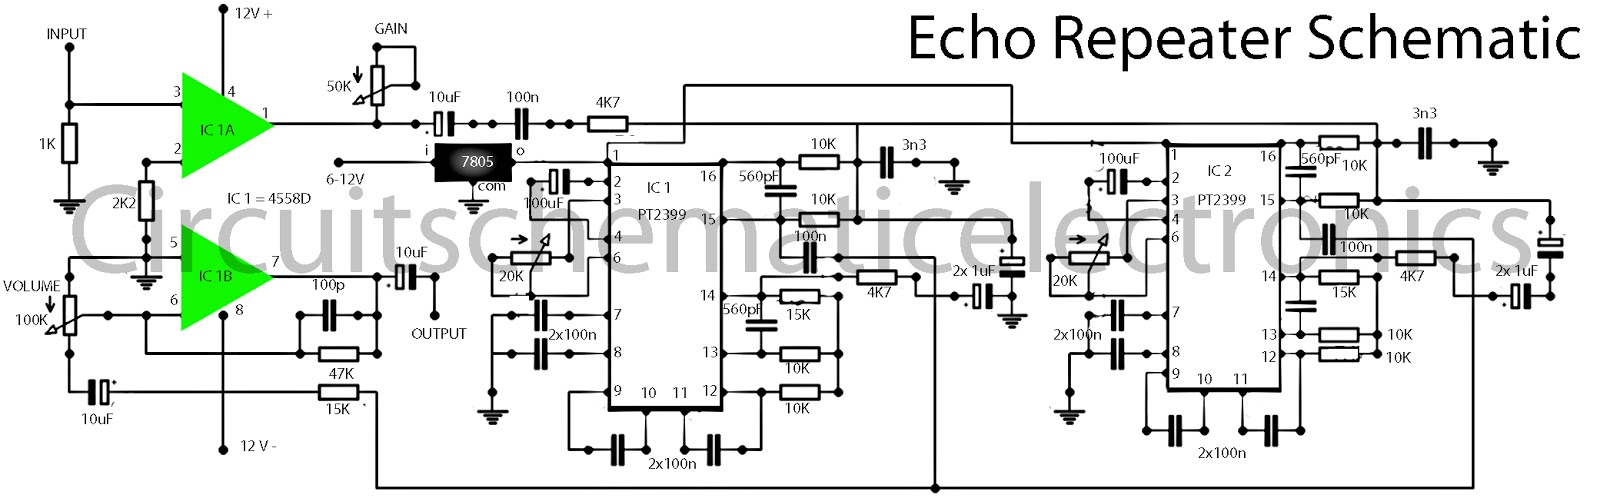 February 2013 Circuit Diagram Plan Wiring Drawing On Pinterest Car Audio Echo Repeater Schematic